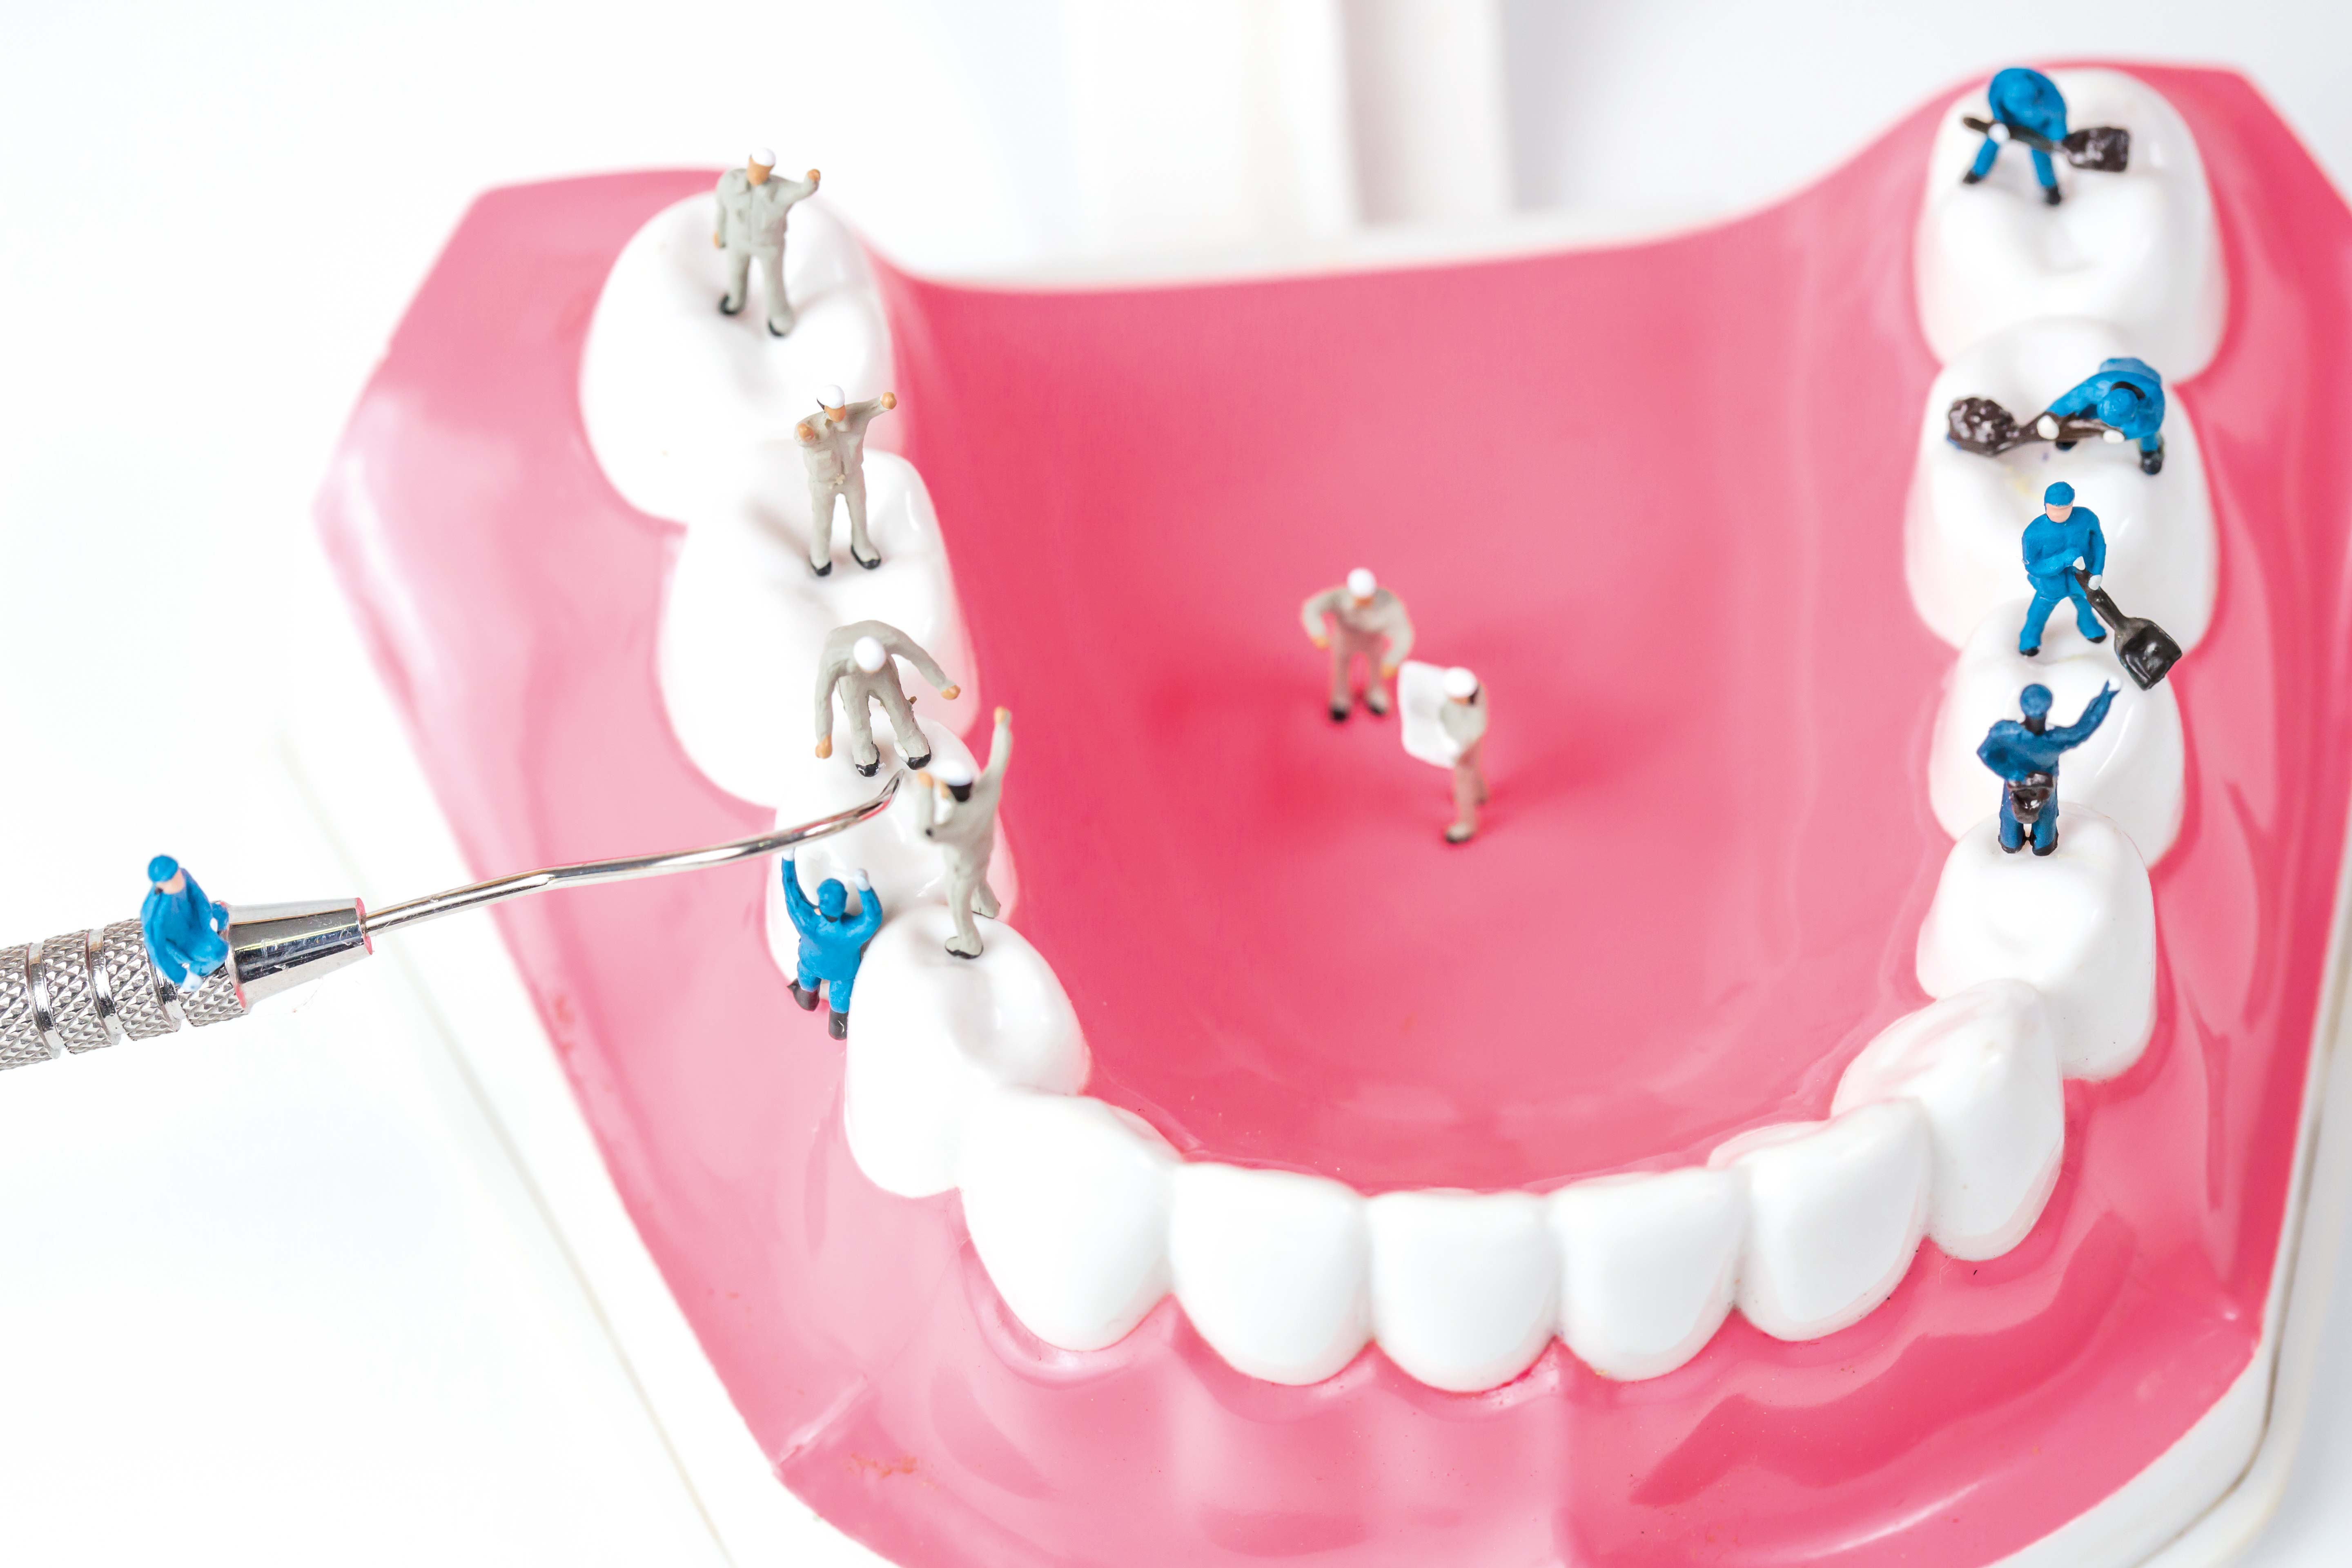 Methods: How to get white teeth